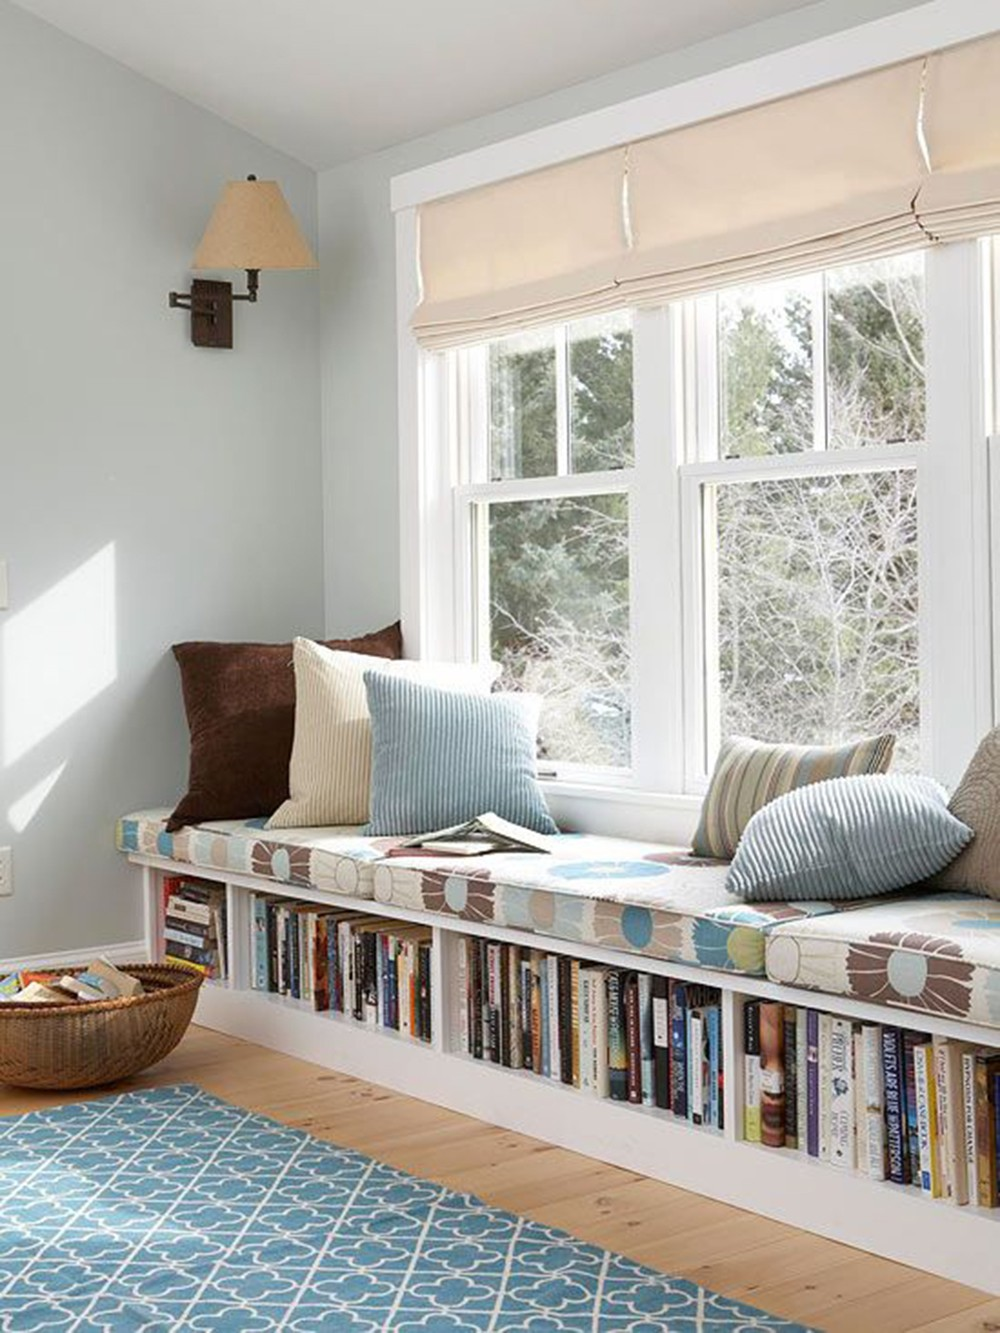 window seat with books and pillows